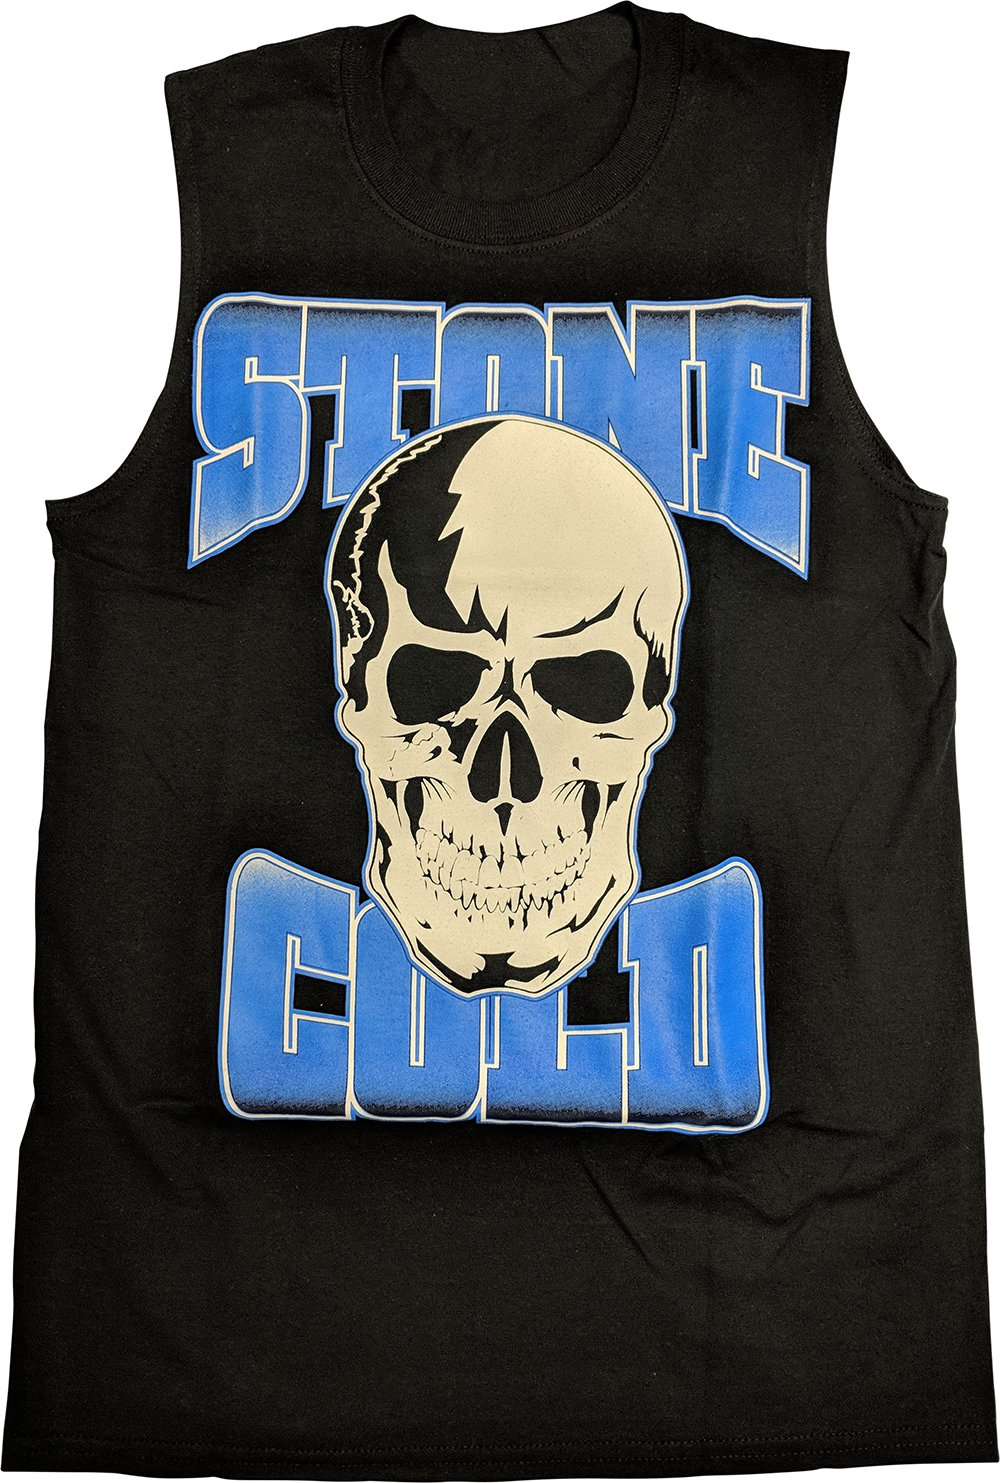 Hybrid Tees Stone Cold Steve Austin Stomping Mudholes Sleeveless Muscle T-Shirt